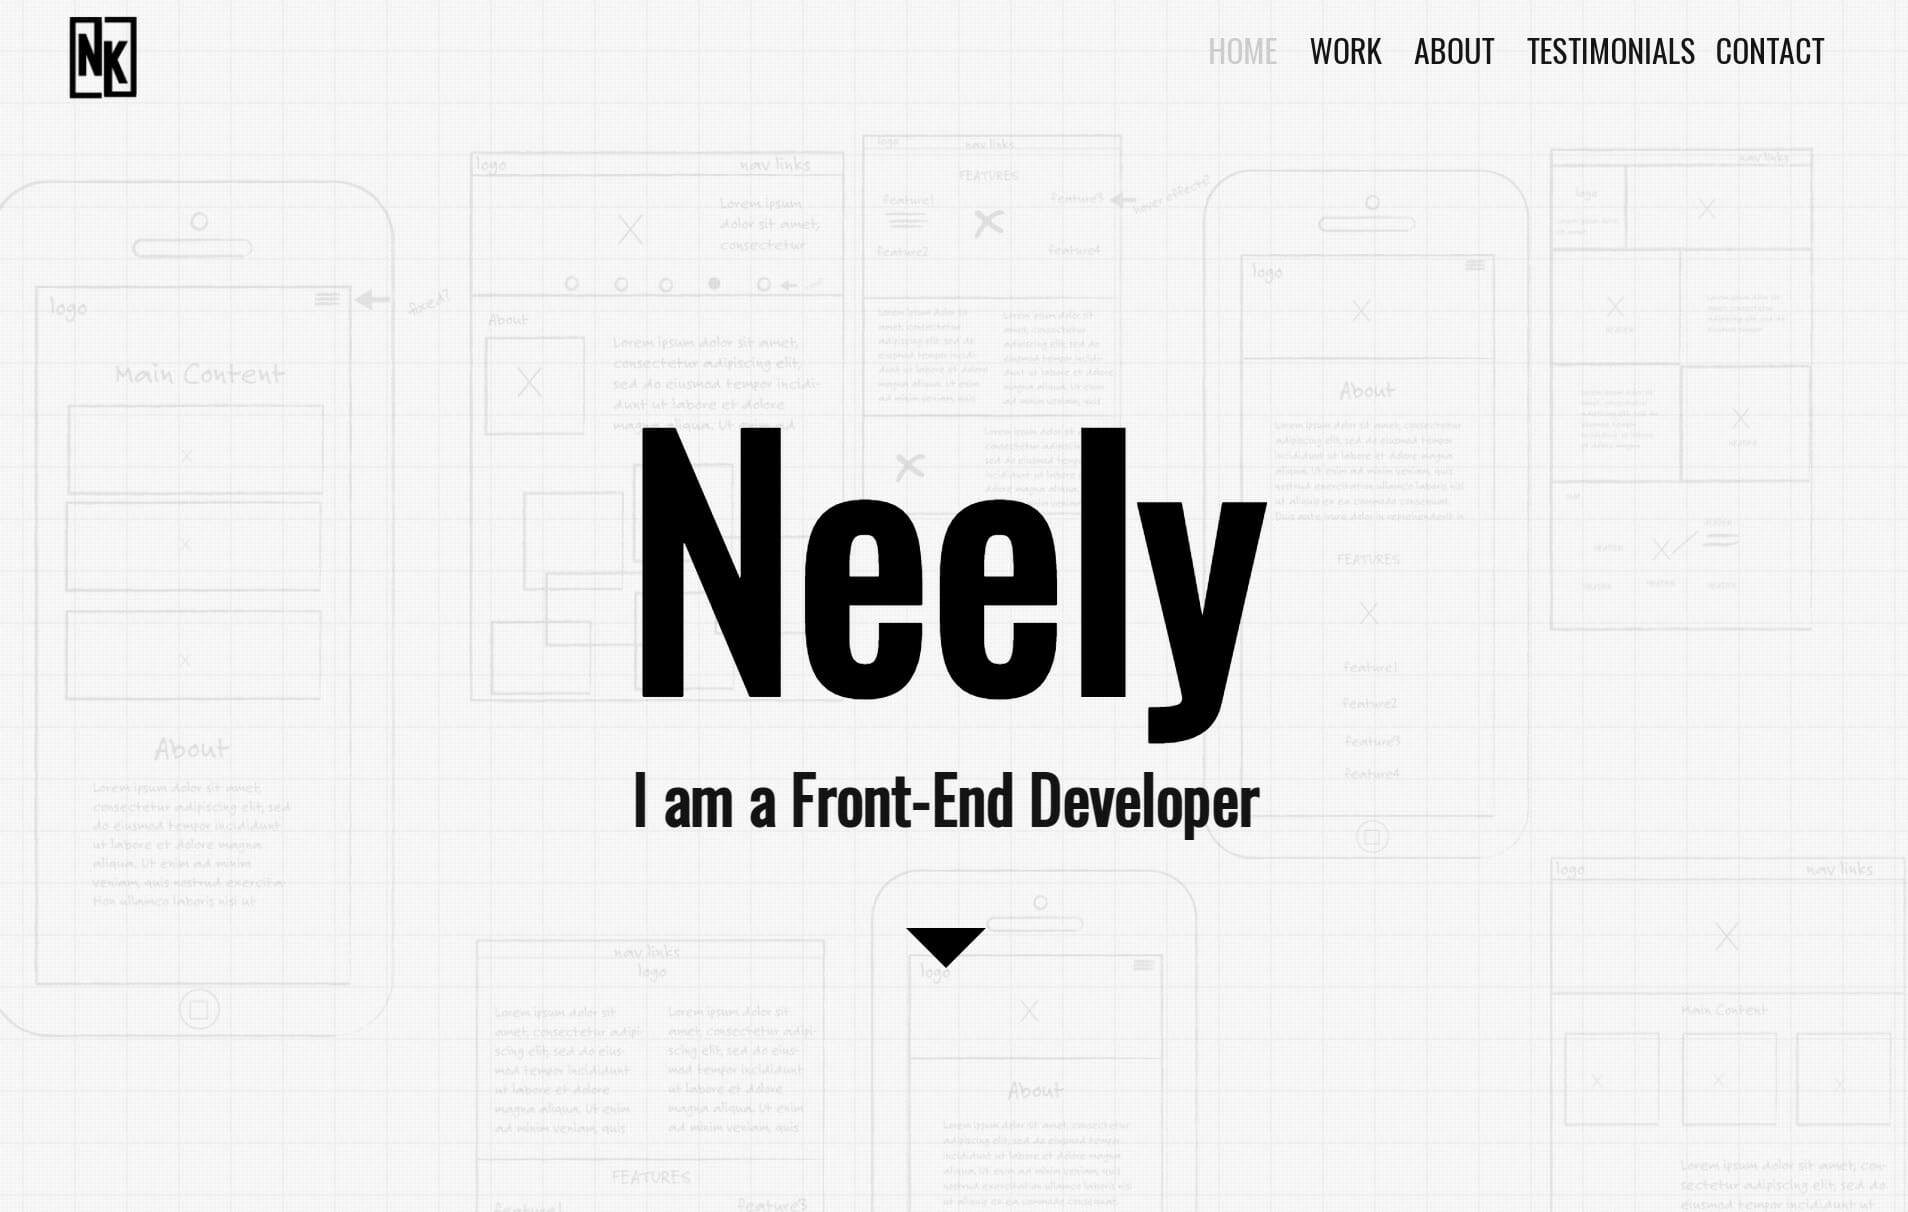 Neely's landing page